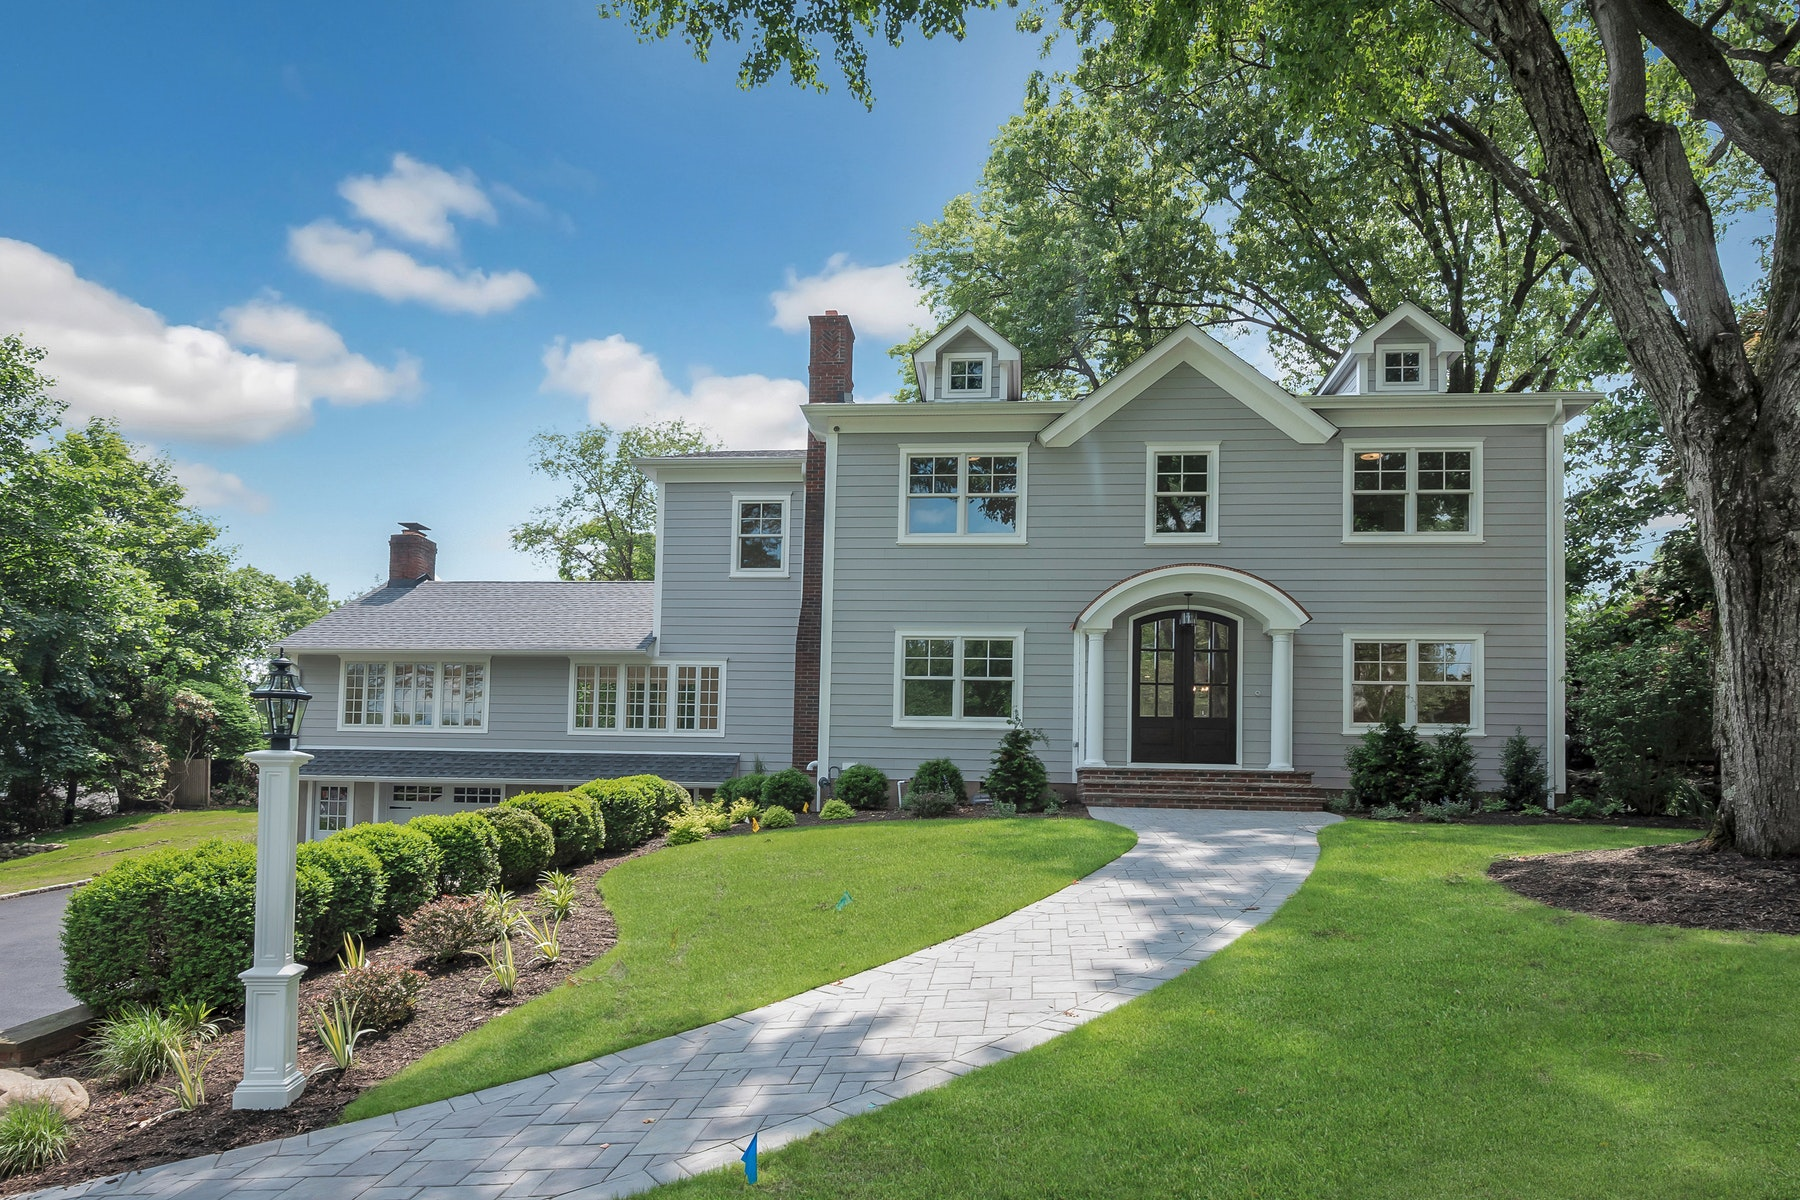 Single Family Homes for Active at Custom Built Luxury Home 379 Van Beekum Place Wyckoff, New Jersey 07481 United States